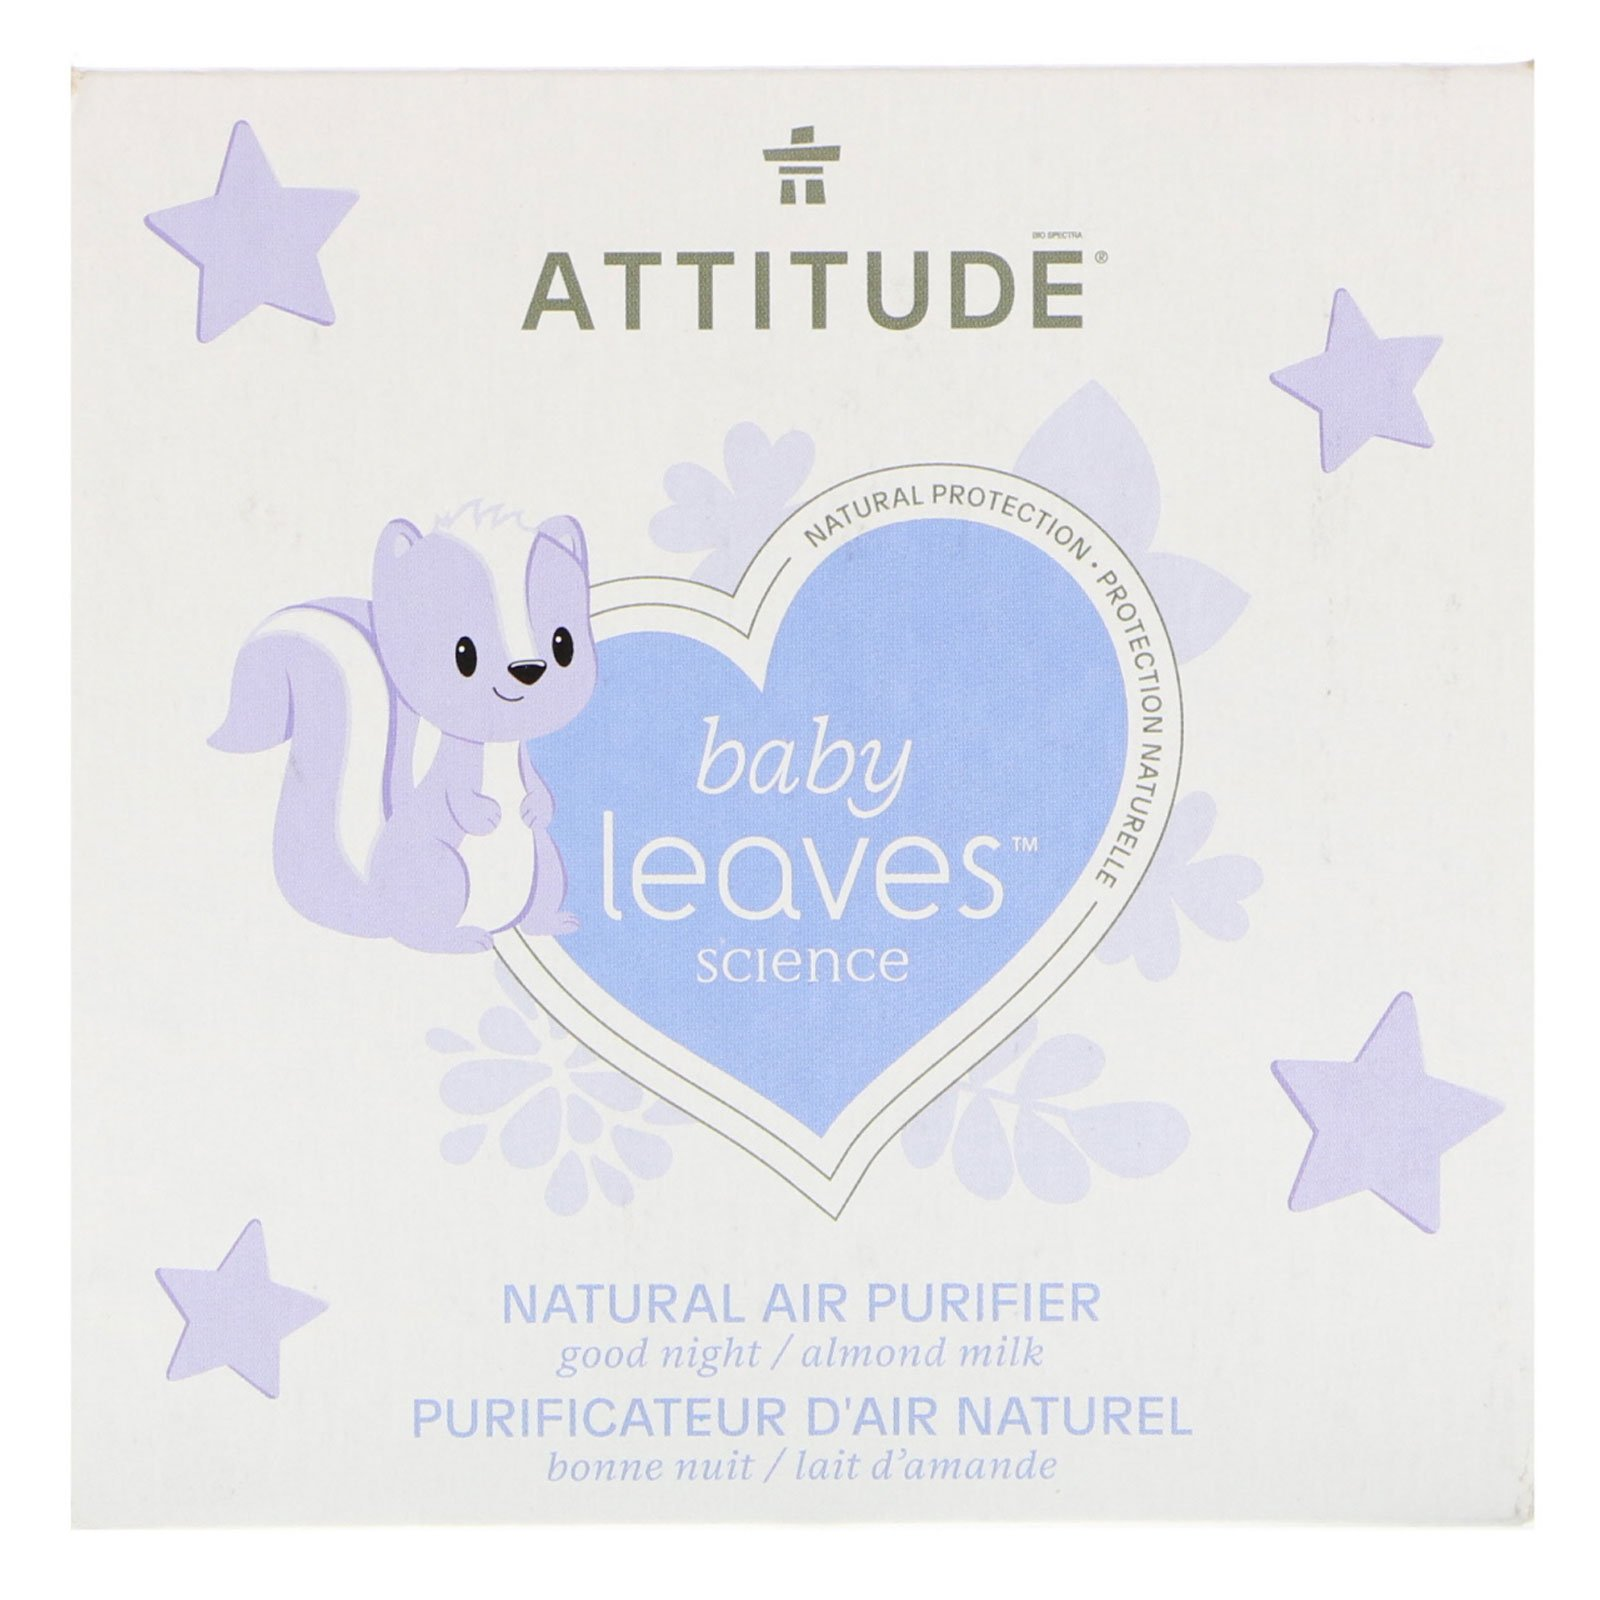 Attitude Natural Air Purifier with Activated Carbon Filter | Traps Air Polluants and Contaminants, Neutralizes Stubborn Odors | Baby Leaves Science Collection | Almond Milk (8 oz)